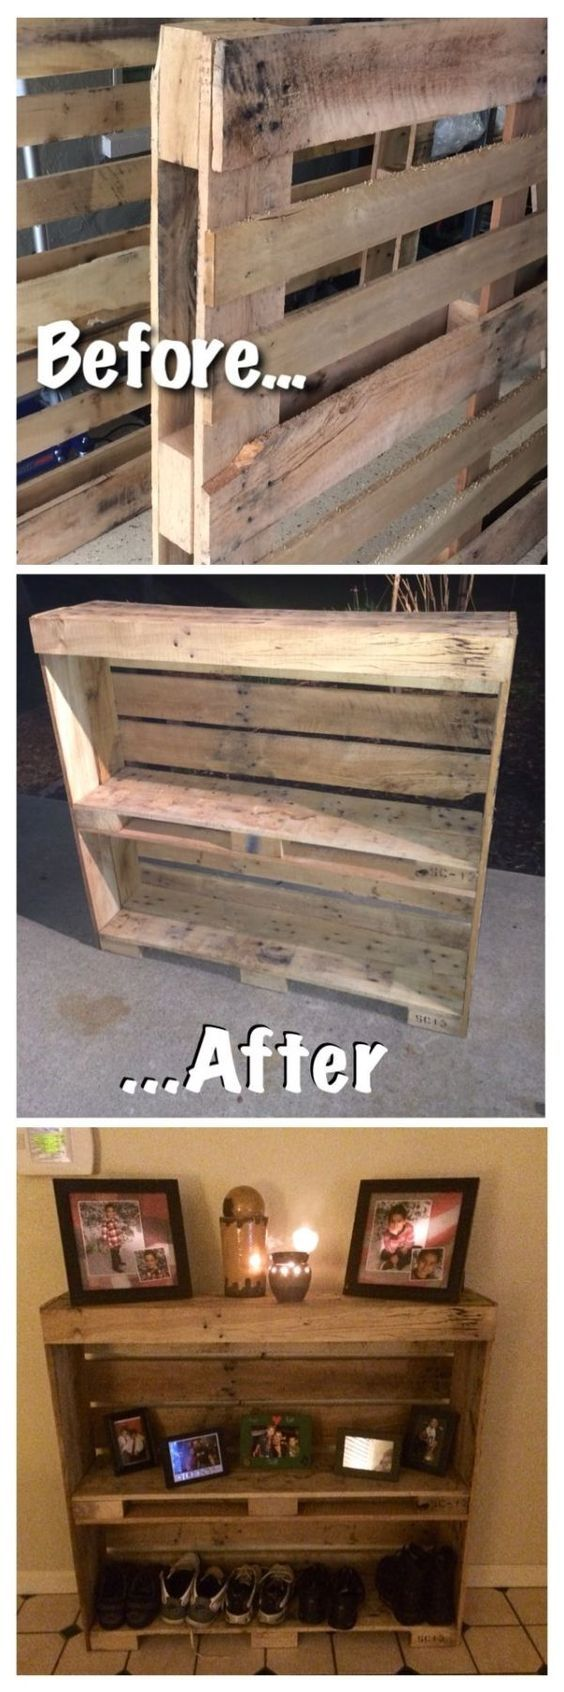 20 Pallet Projects You Ought To Try This Summer Vintage Revived Upcycling And Repurposing